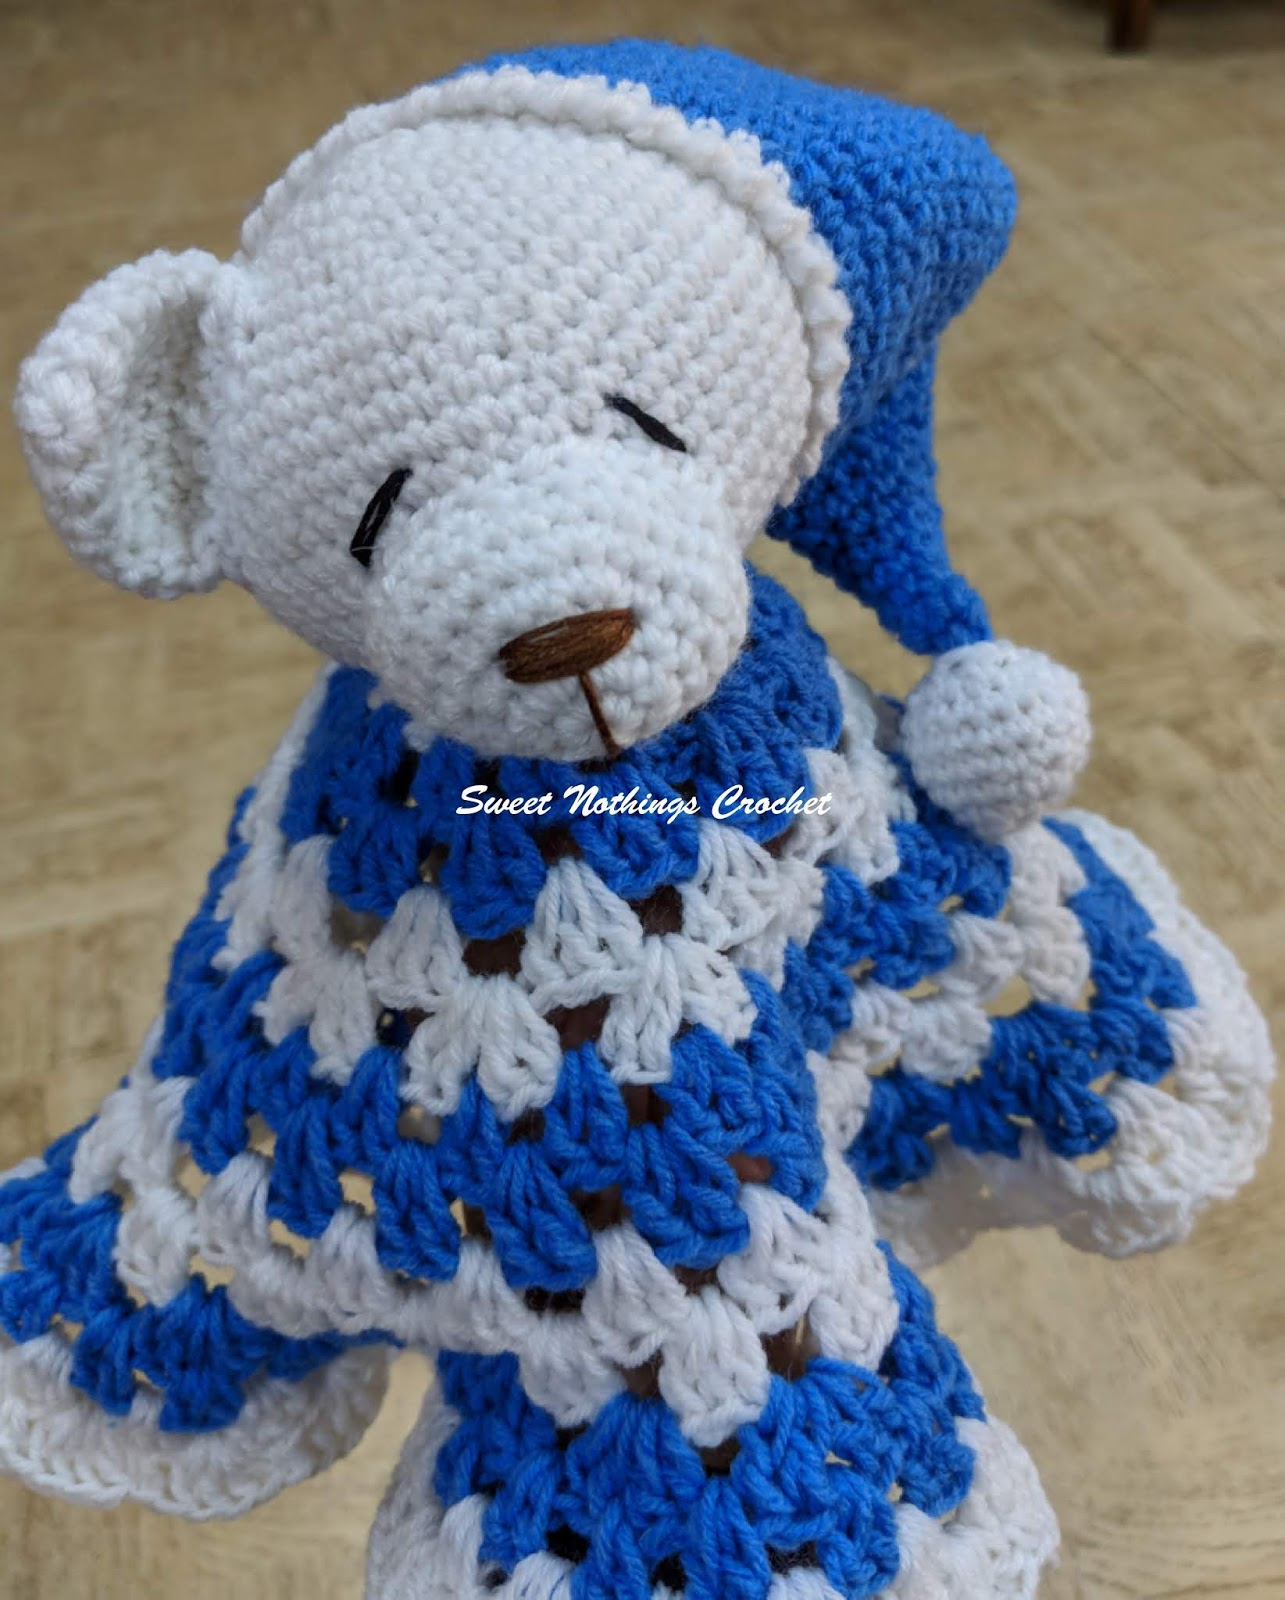 Cookie Monster crochet by Dianaleaver on DeviantArt | 1600x1285